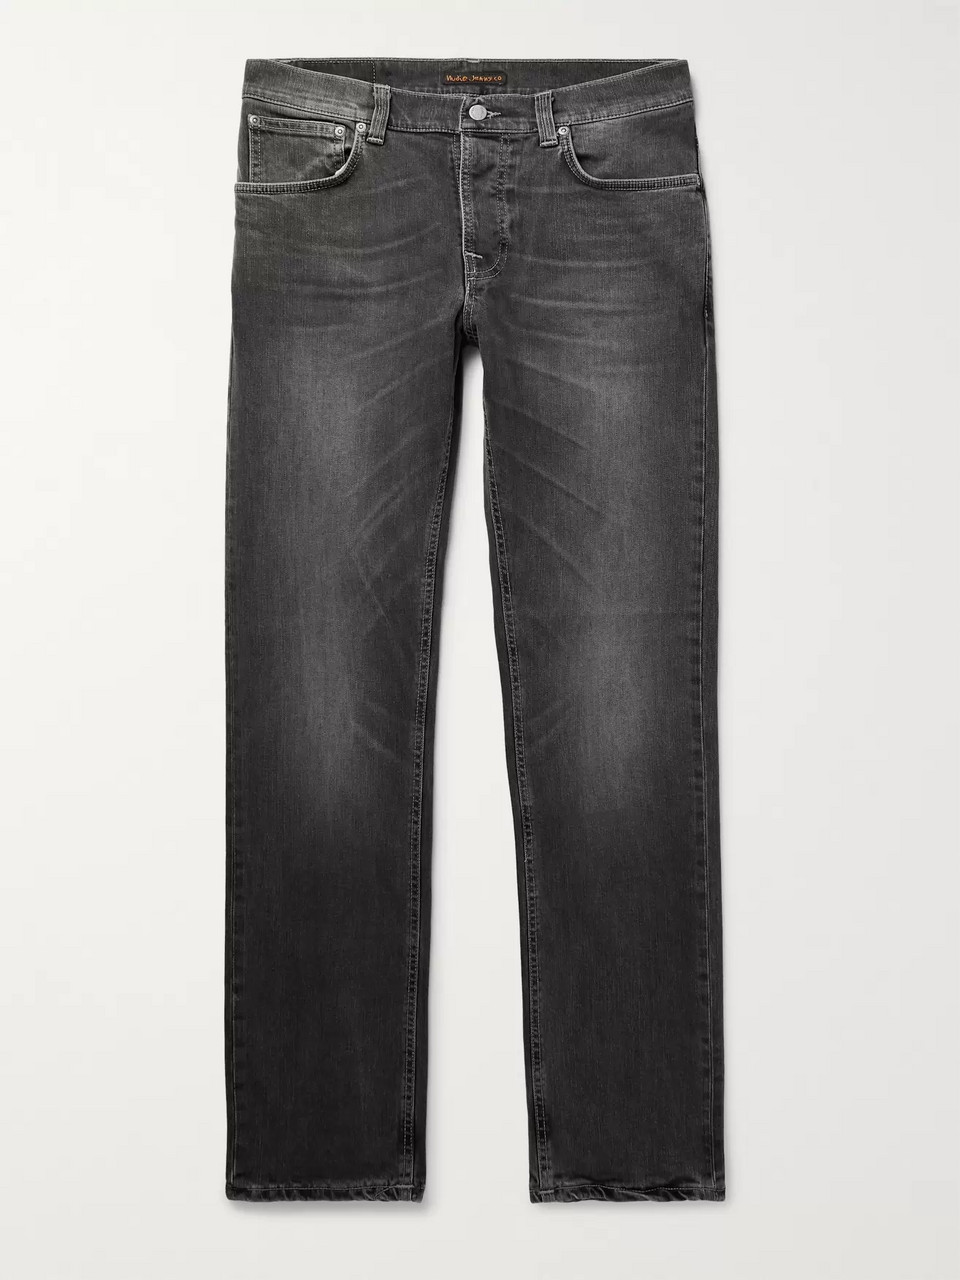 Nudie Jeans Grim Tim Organic Stretch-Denim Jeans